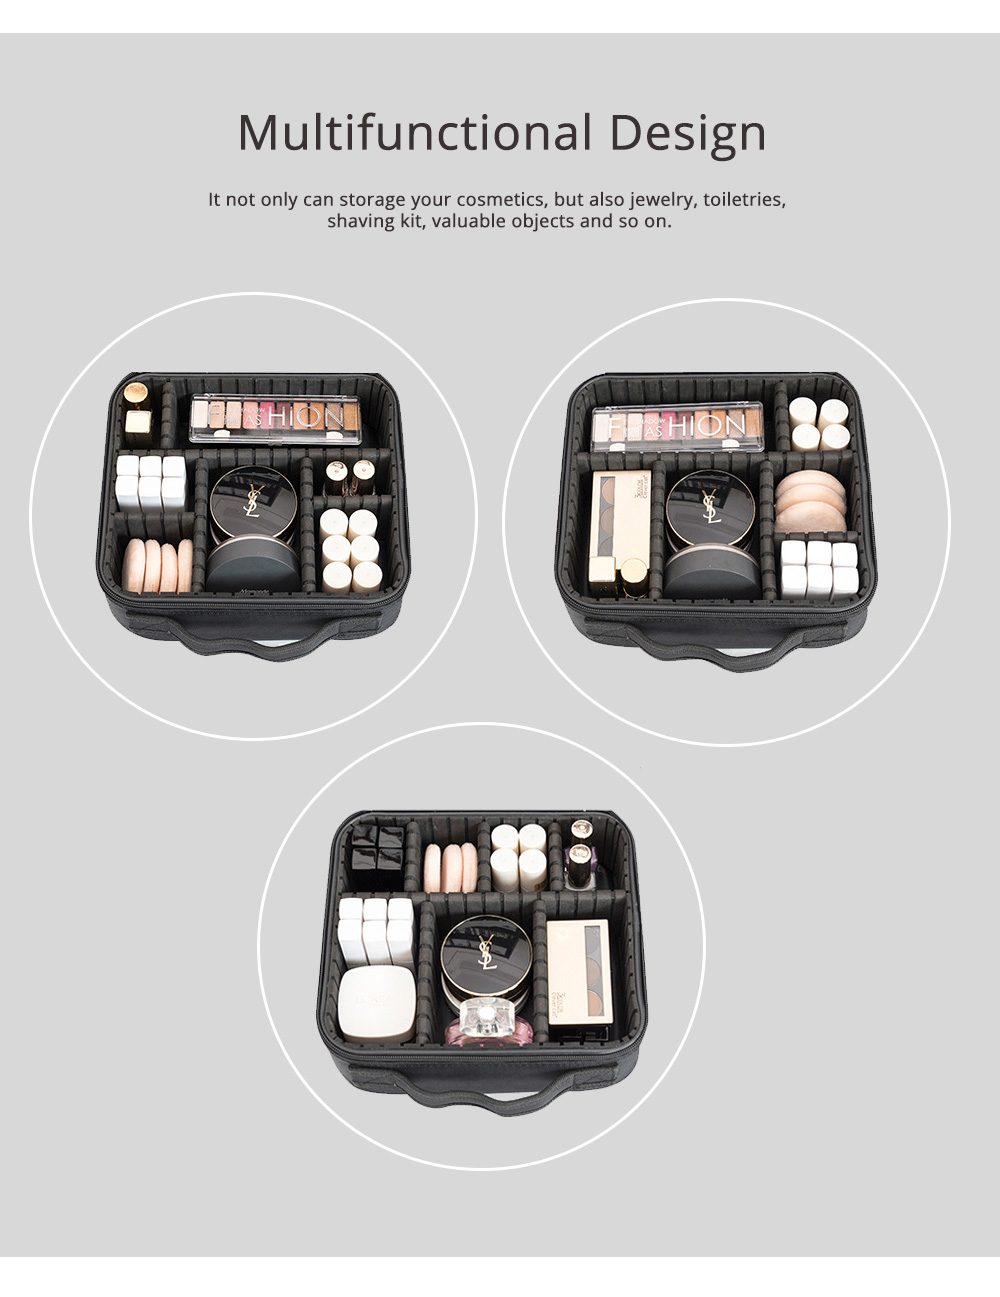 Portable Travel Cosmetics Bag, Black Storage Bag With Adjustable Dividers For Cosmetics, Makeup Brushes, Toiletry & Jewelry 3